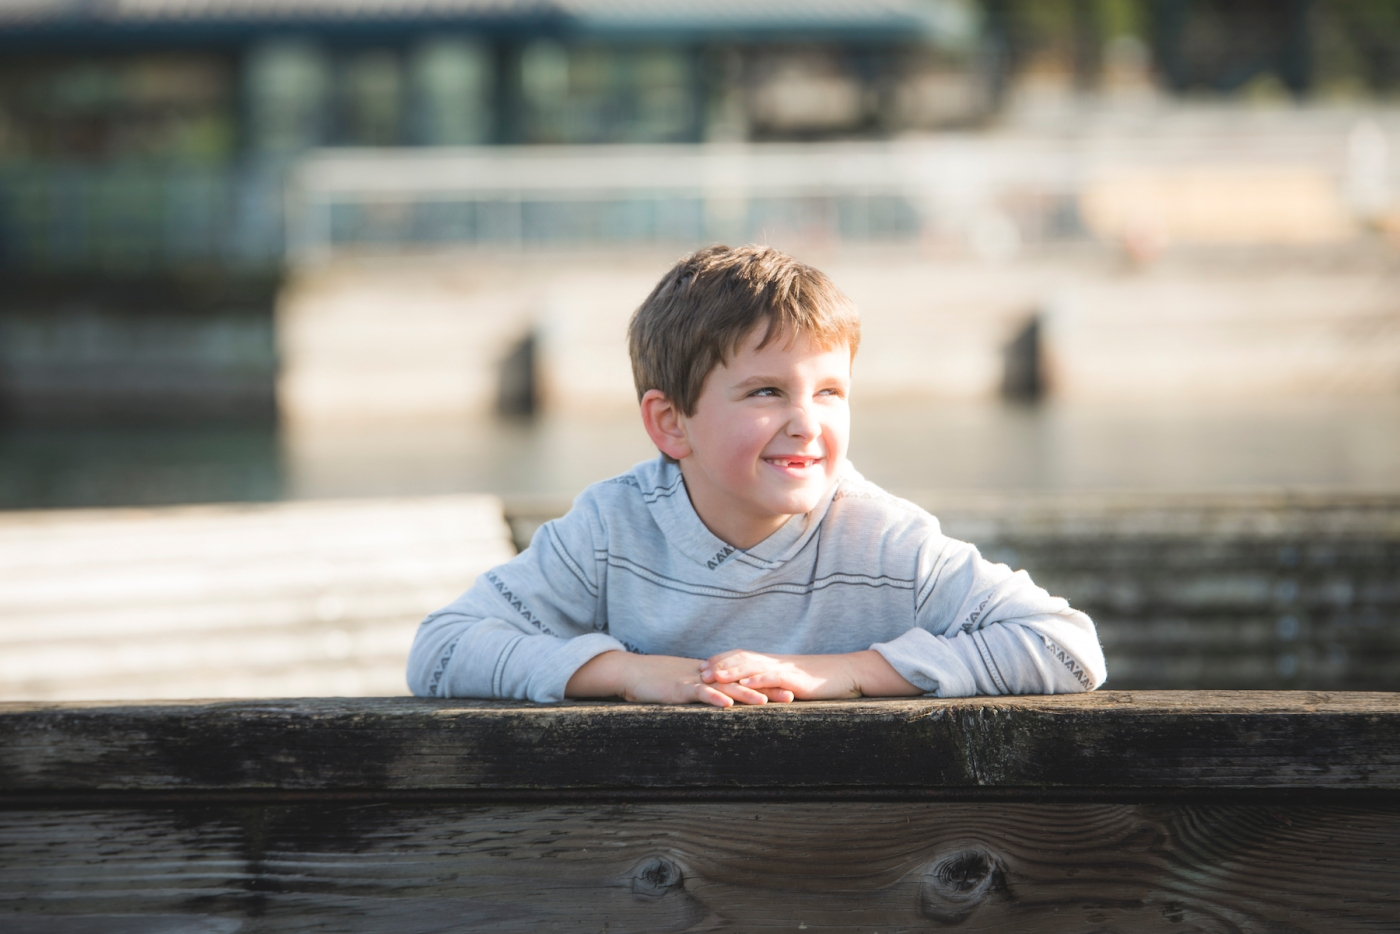 janes_photography_2016_coulon_park_renton_family_session_spencer8126